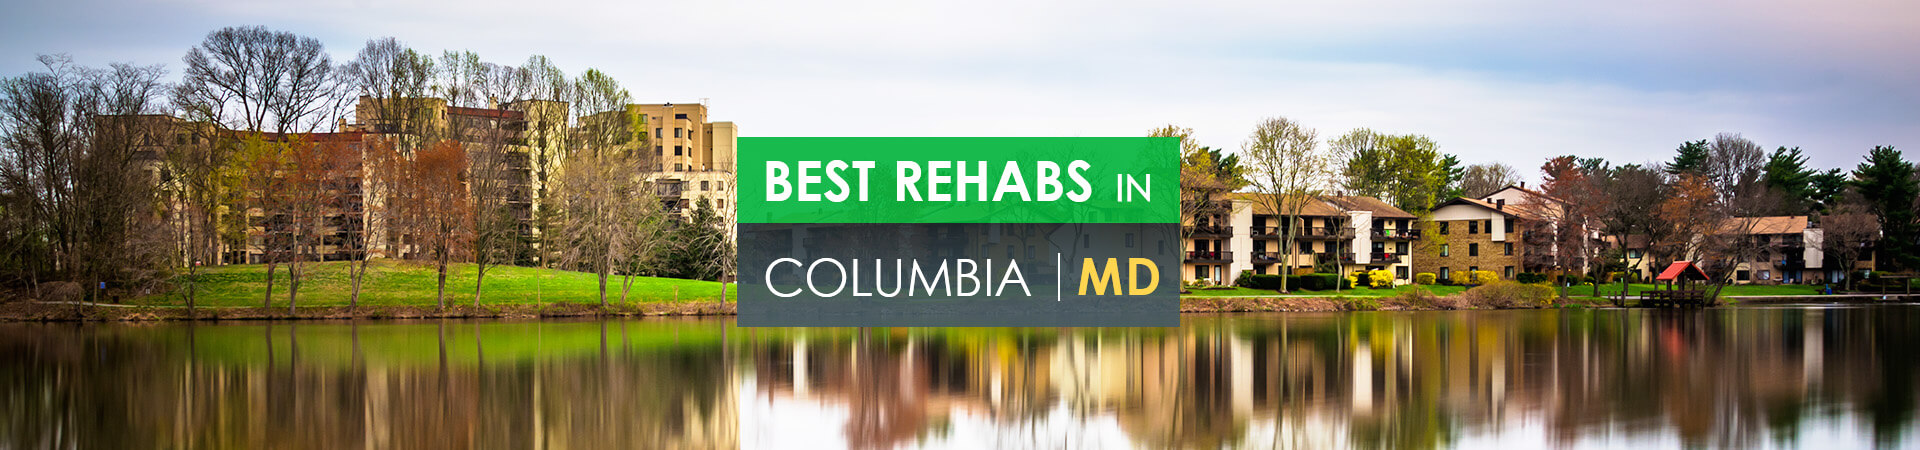 Best rehabs in Columbia, MD